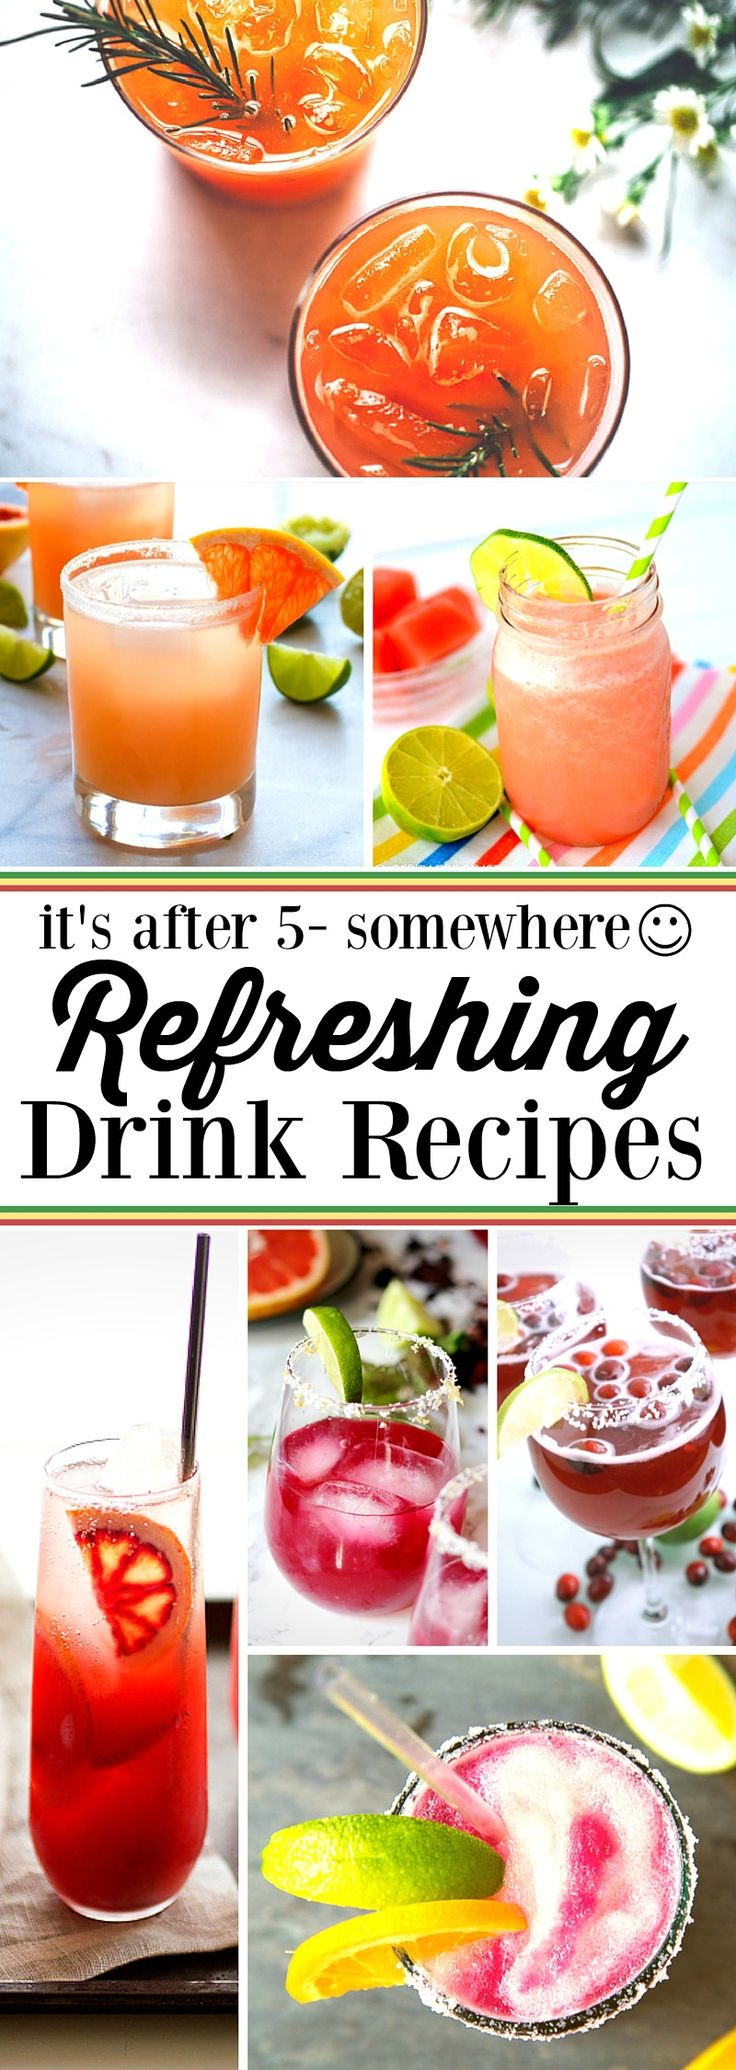 19 best ideas about drink recipes on pinterest sangria for Refreshing alcoholic drink recipes